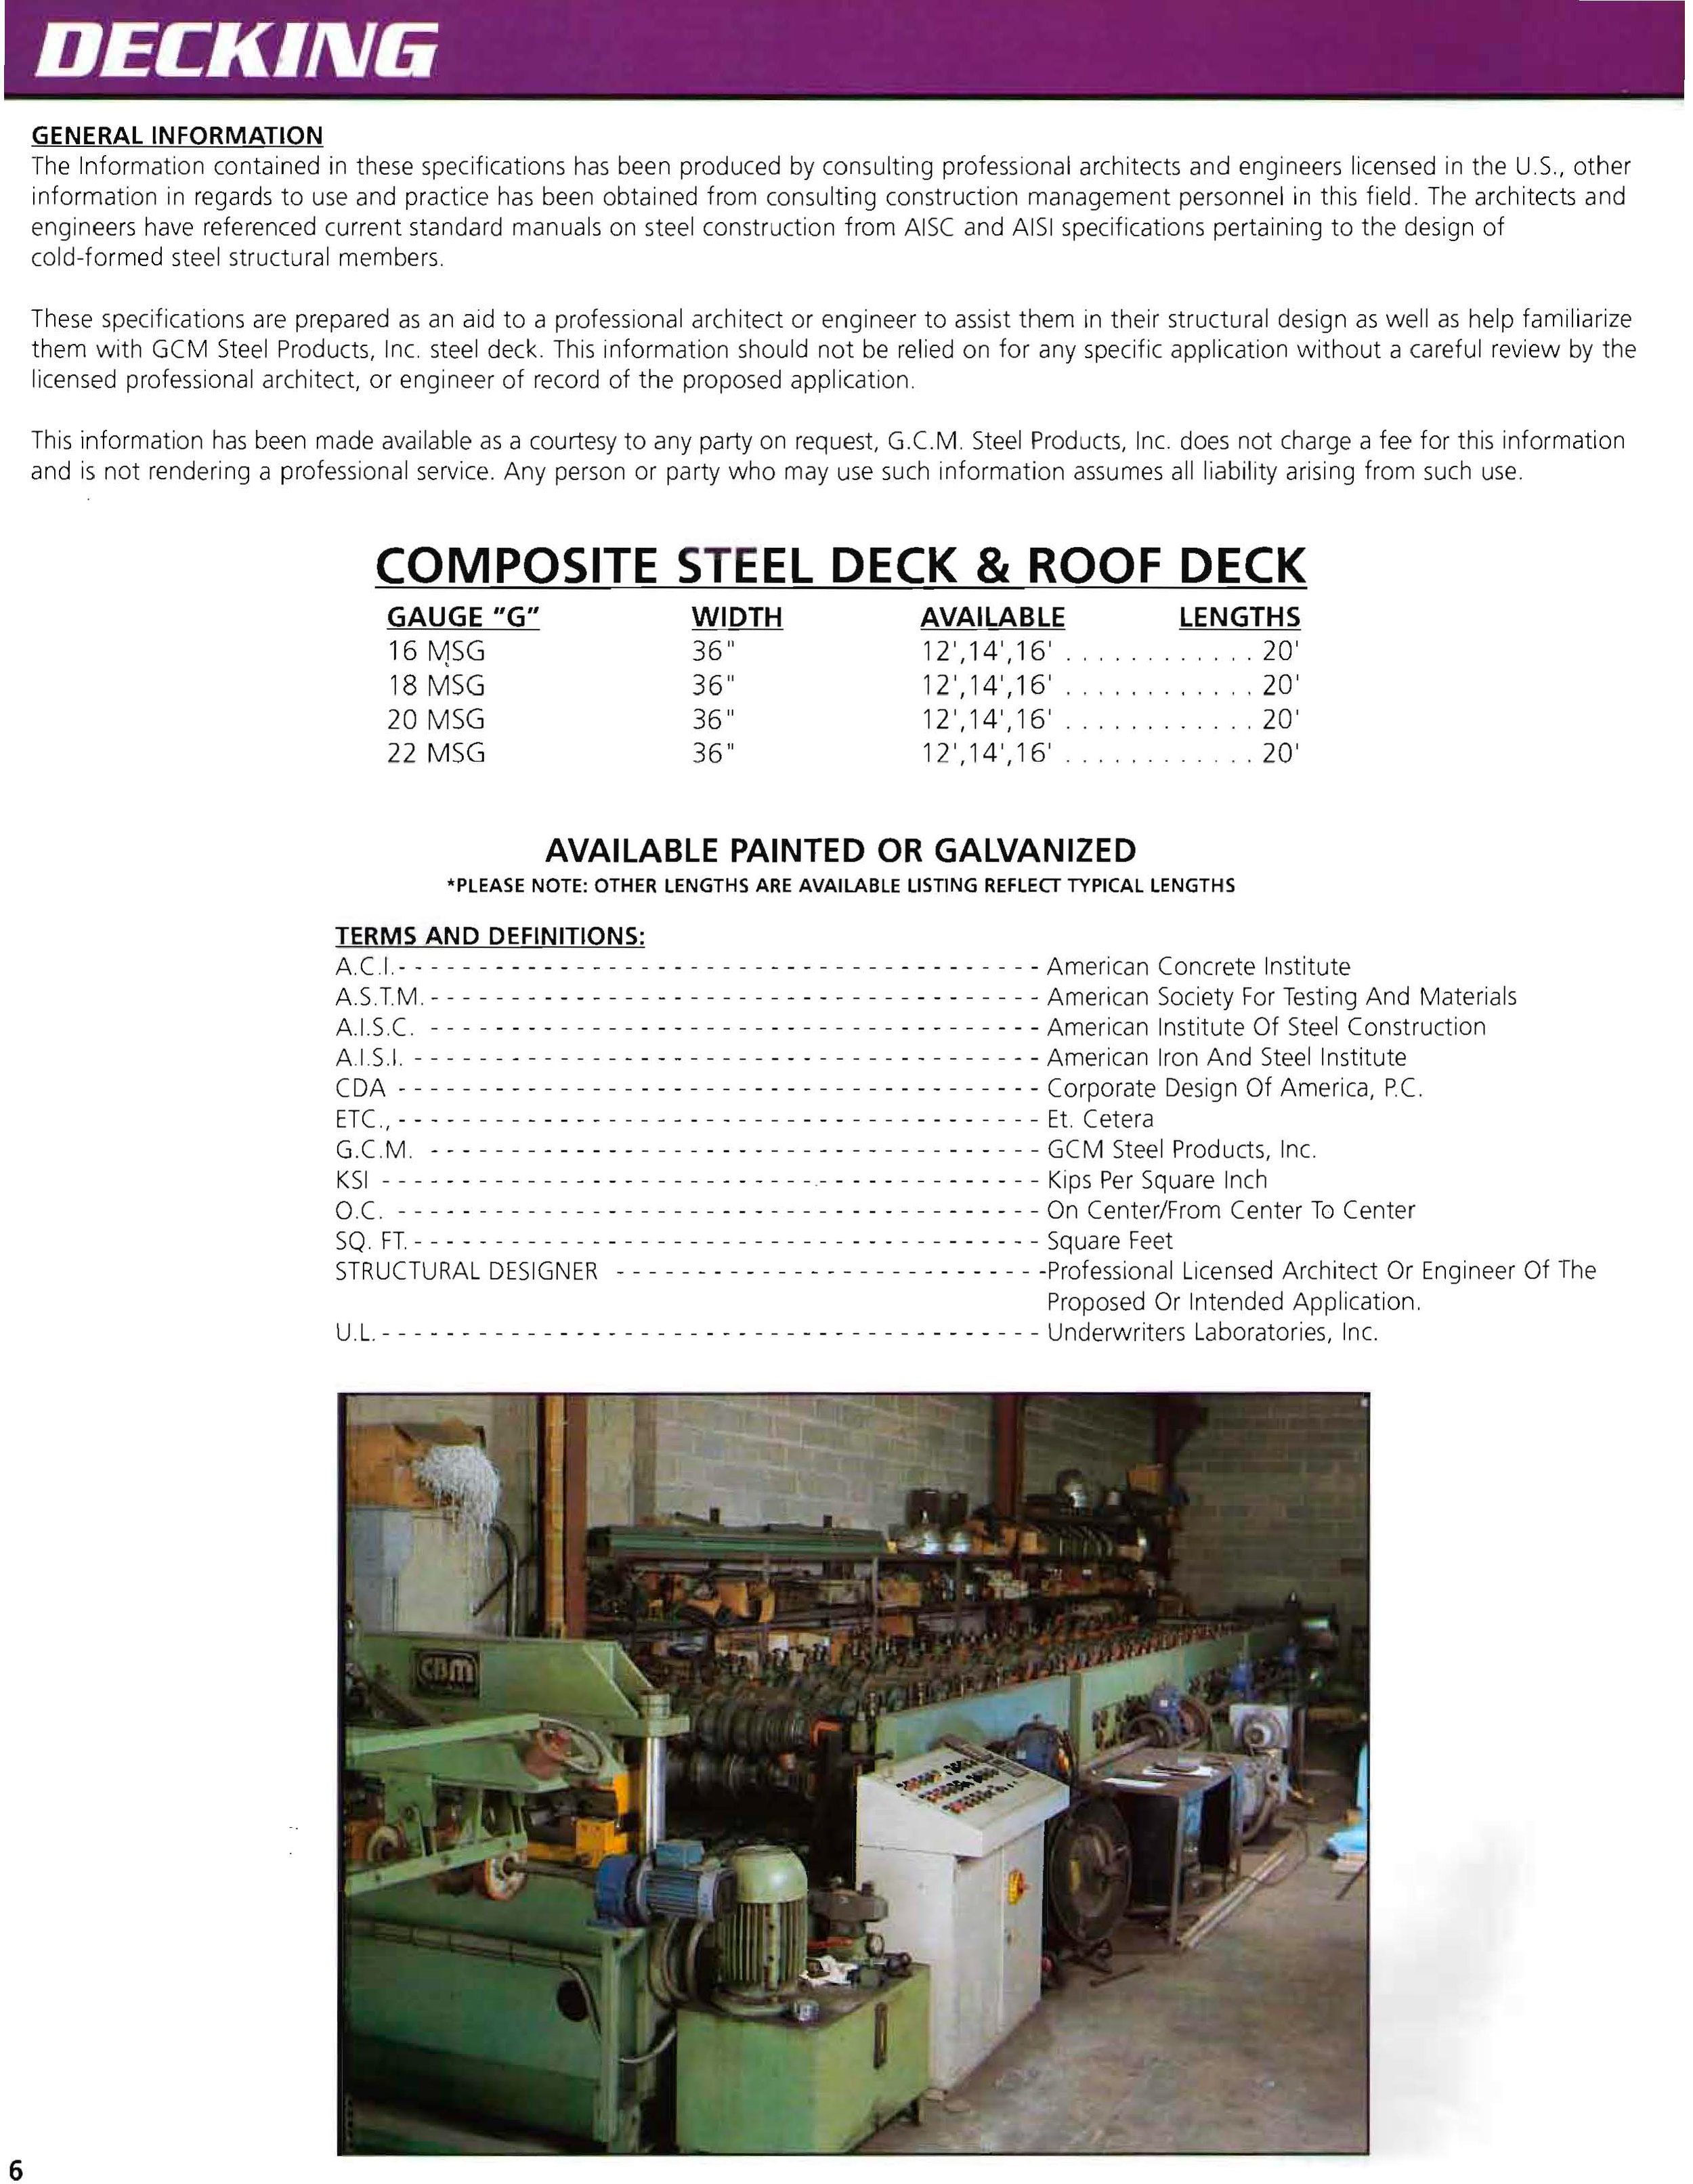 GCM-STEEL-Deck-Cut-Sheets-1.jpg